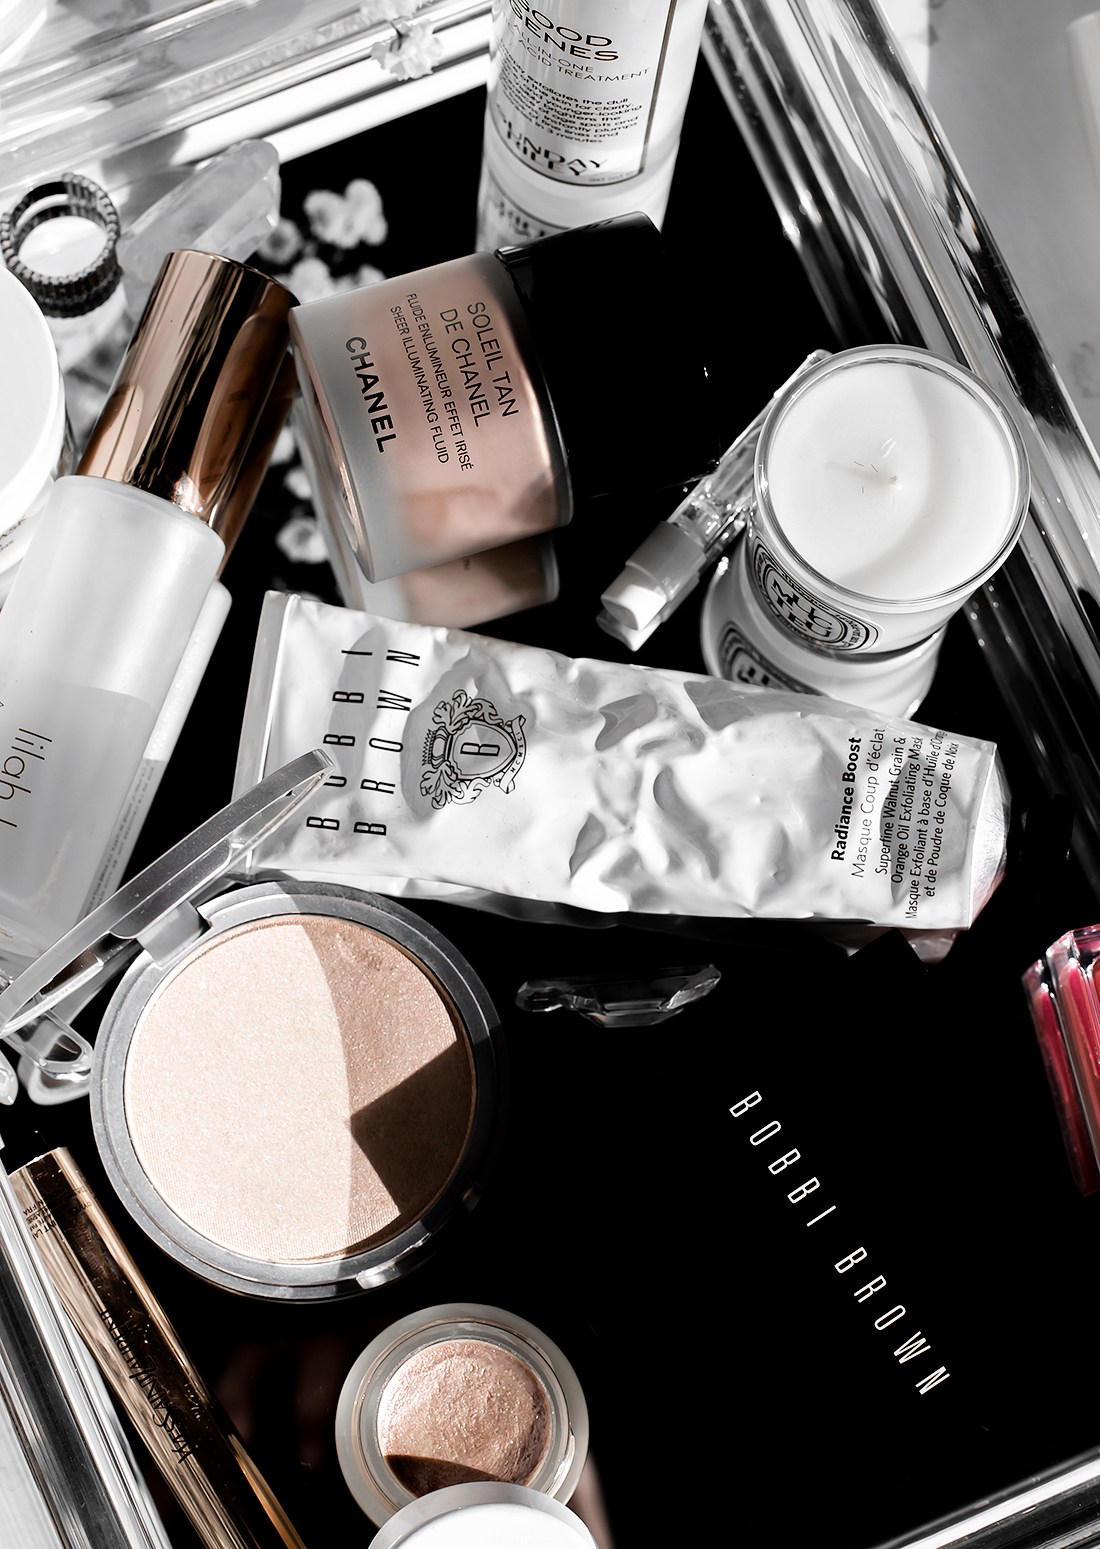 Make it Glow: How to Revive Dull Skin